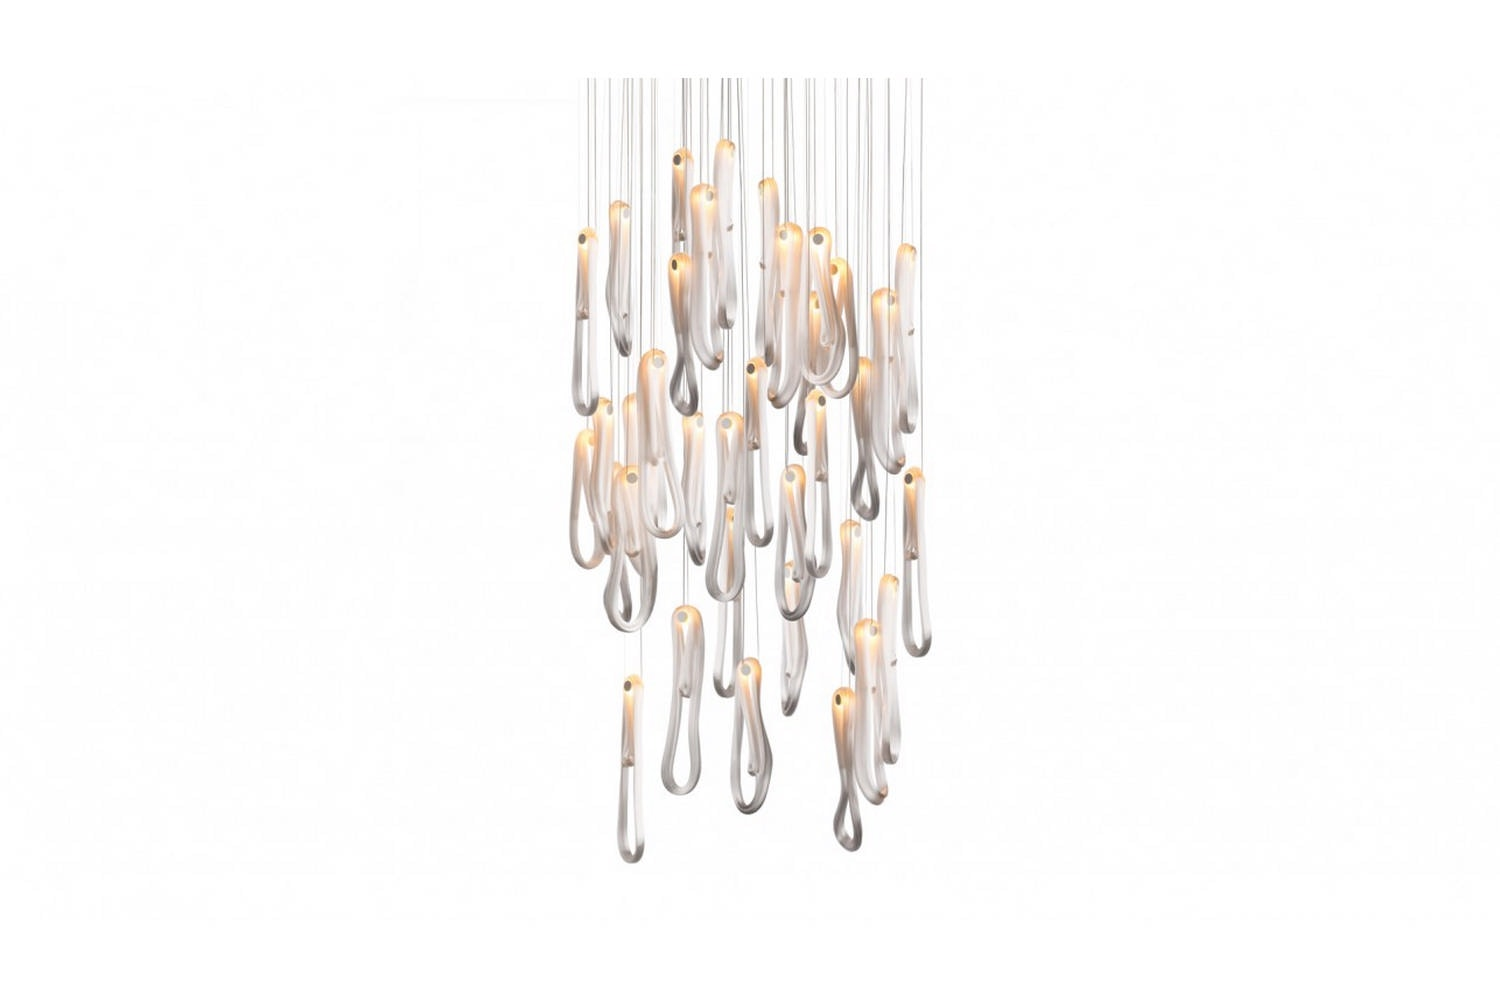 87.36 Suspension Lamp by Omer Arbel for Bocci